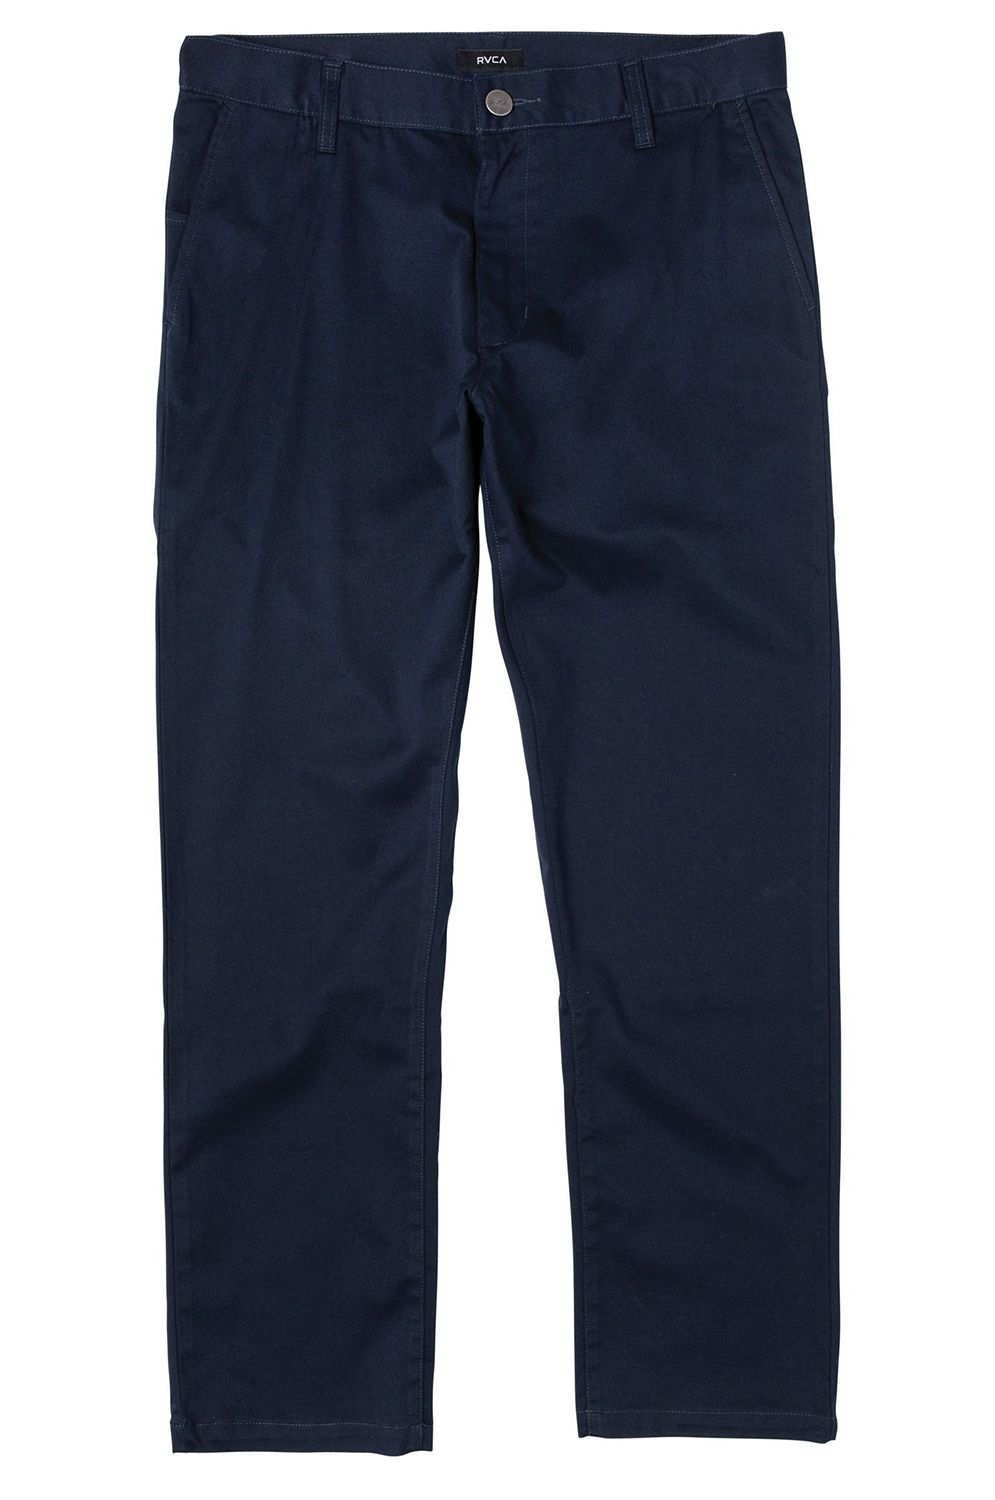 RVCA Pants THE WEEKEND STRETCH Navy Marine